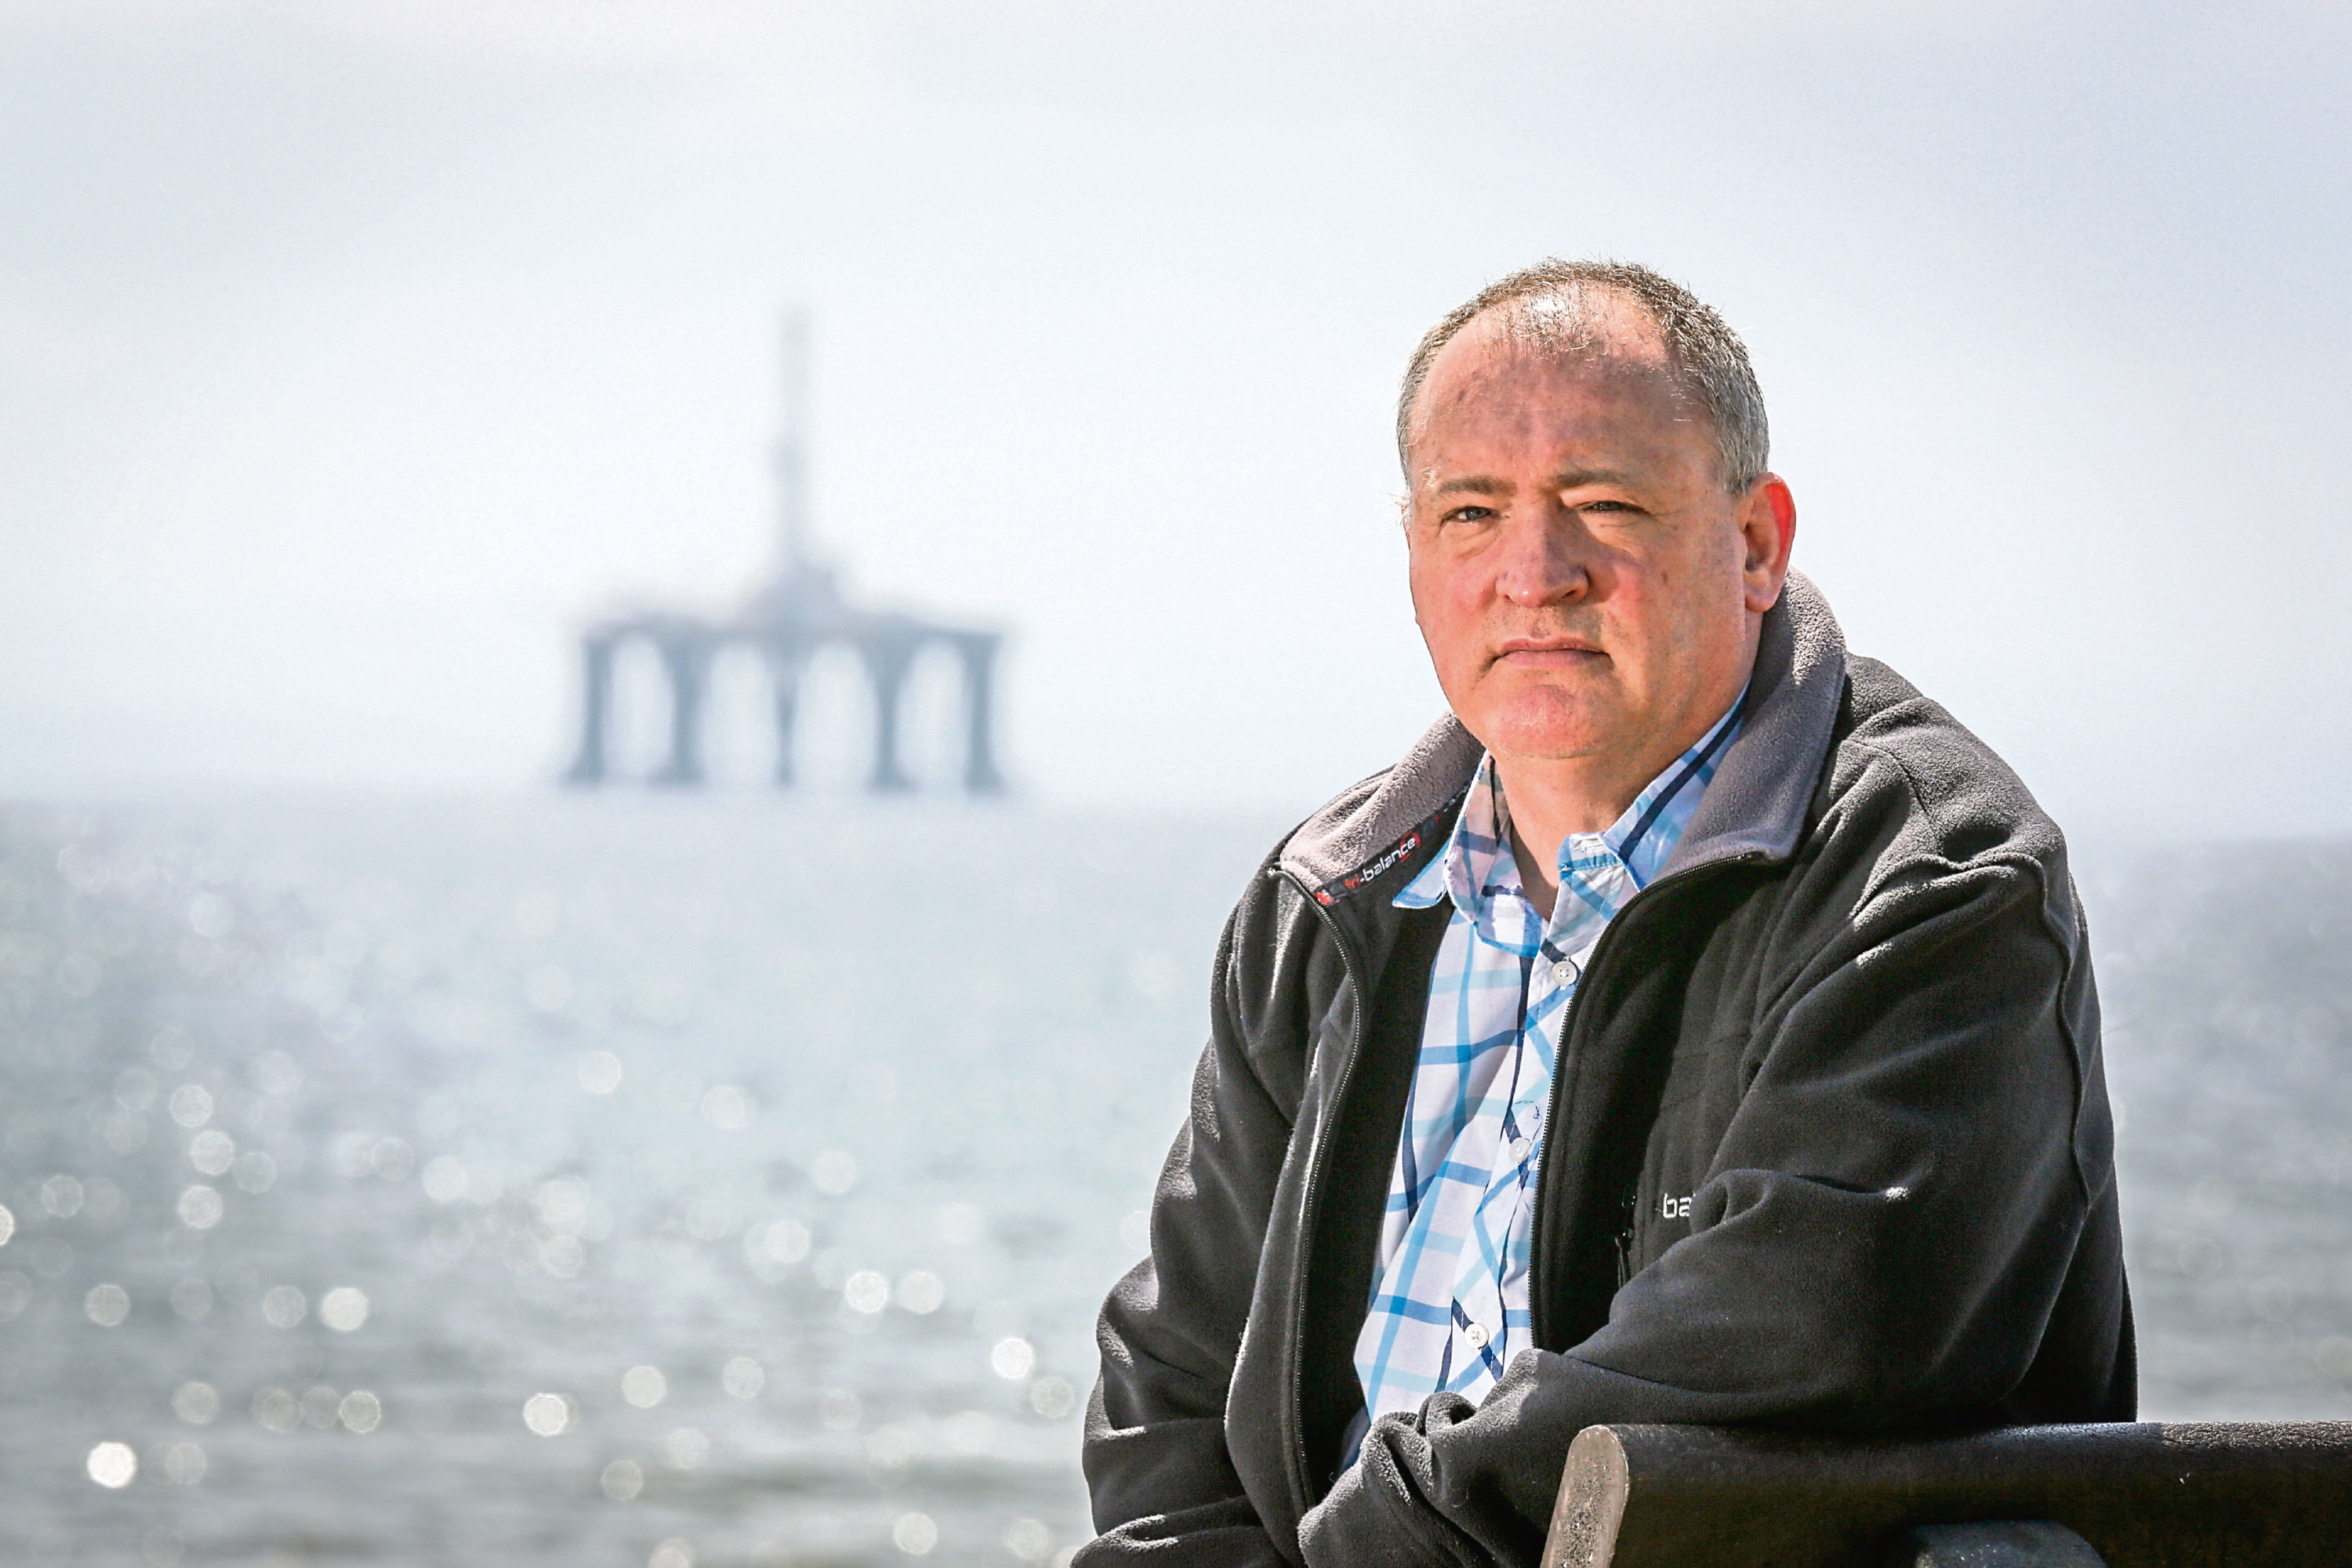 Charles Haffey was honoured for his heroics during the Piper Alpha disaster.